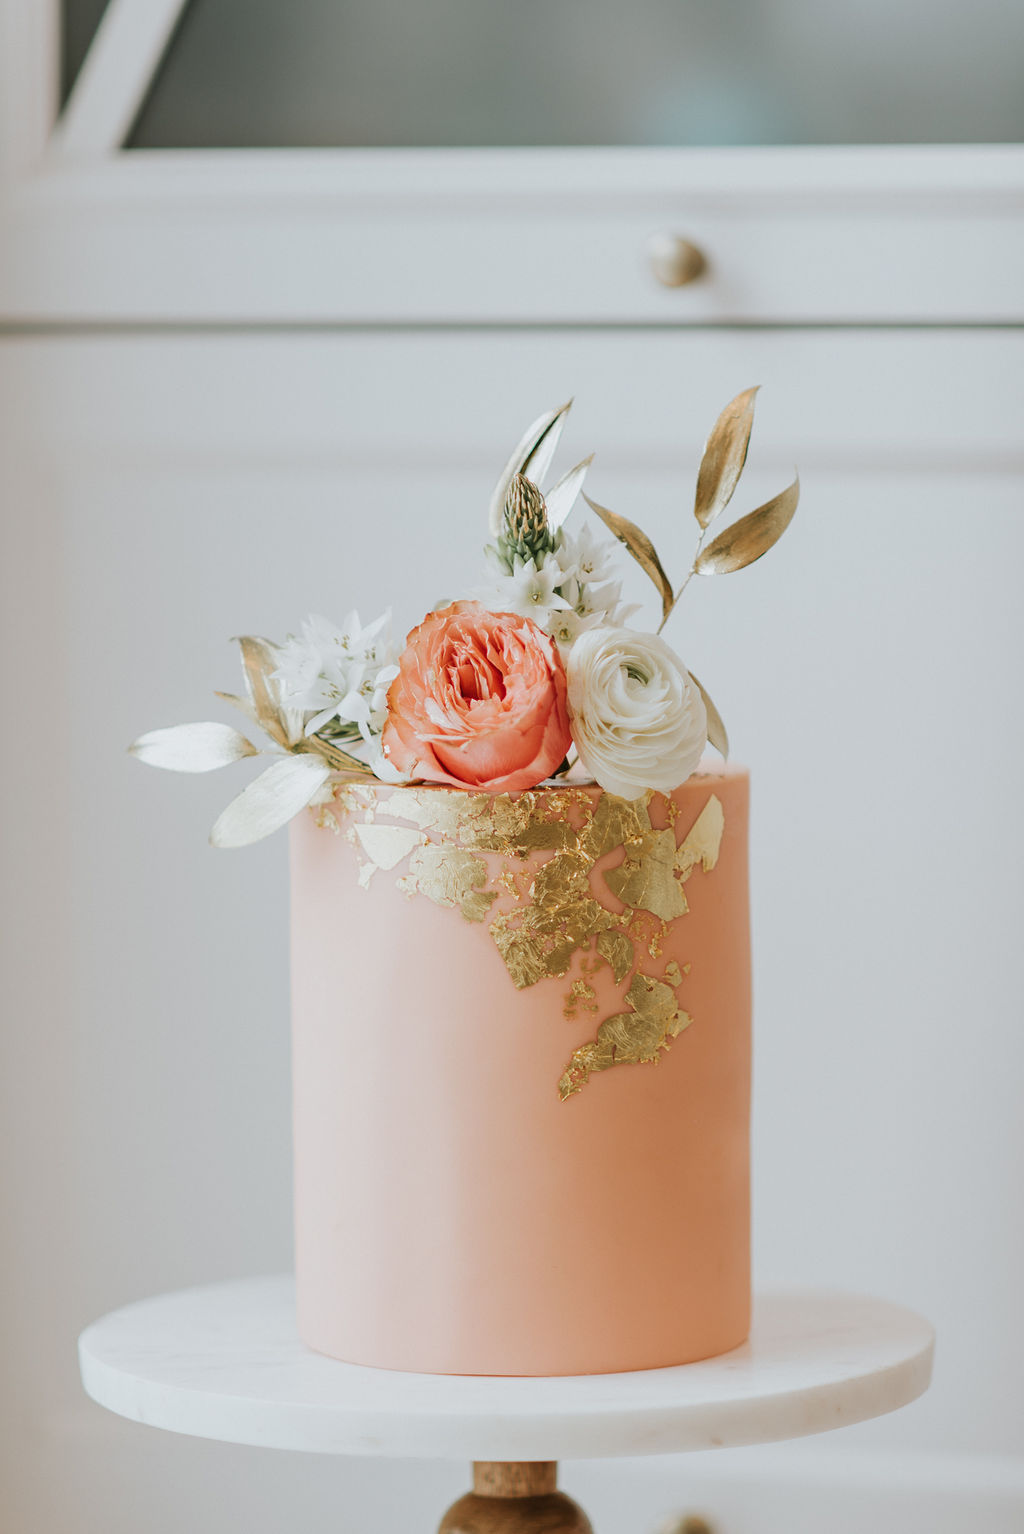 montreal_wedding_cake_living_coral_with_flowers.jpg